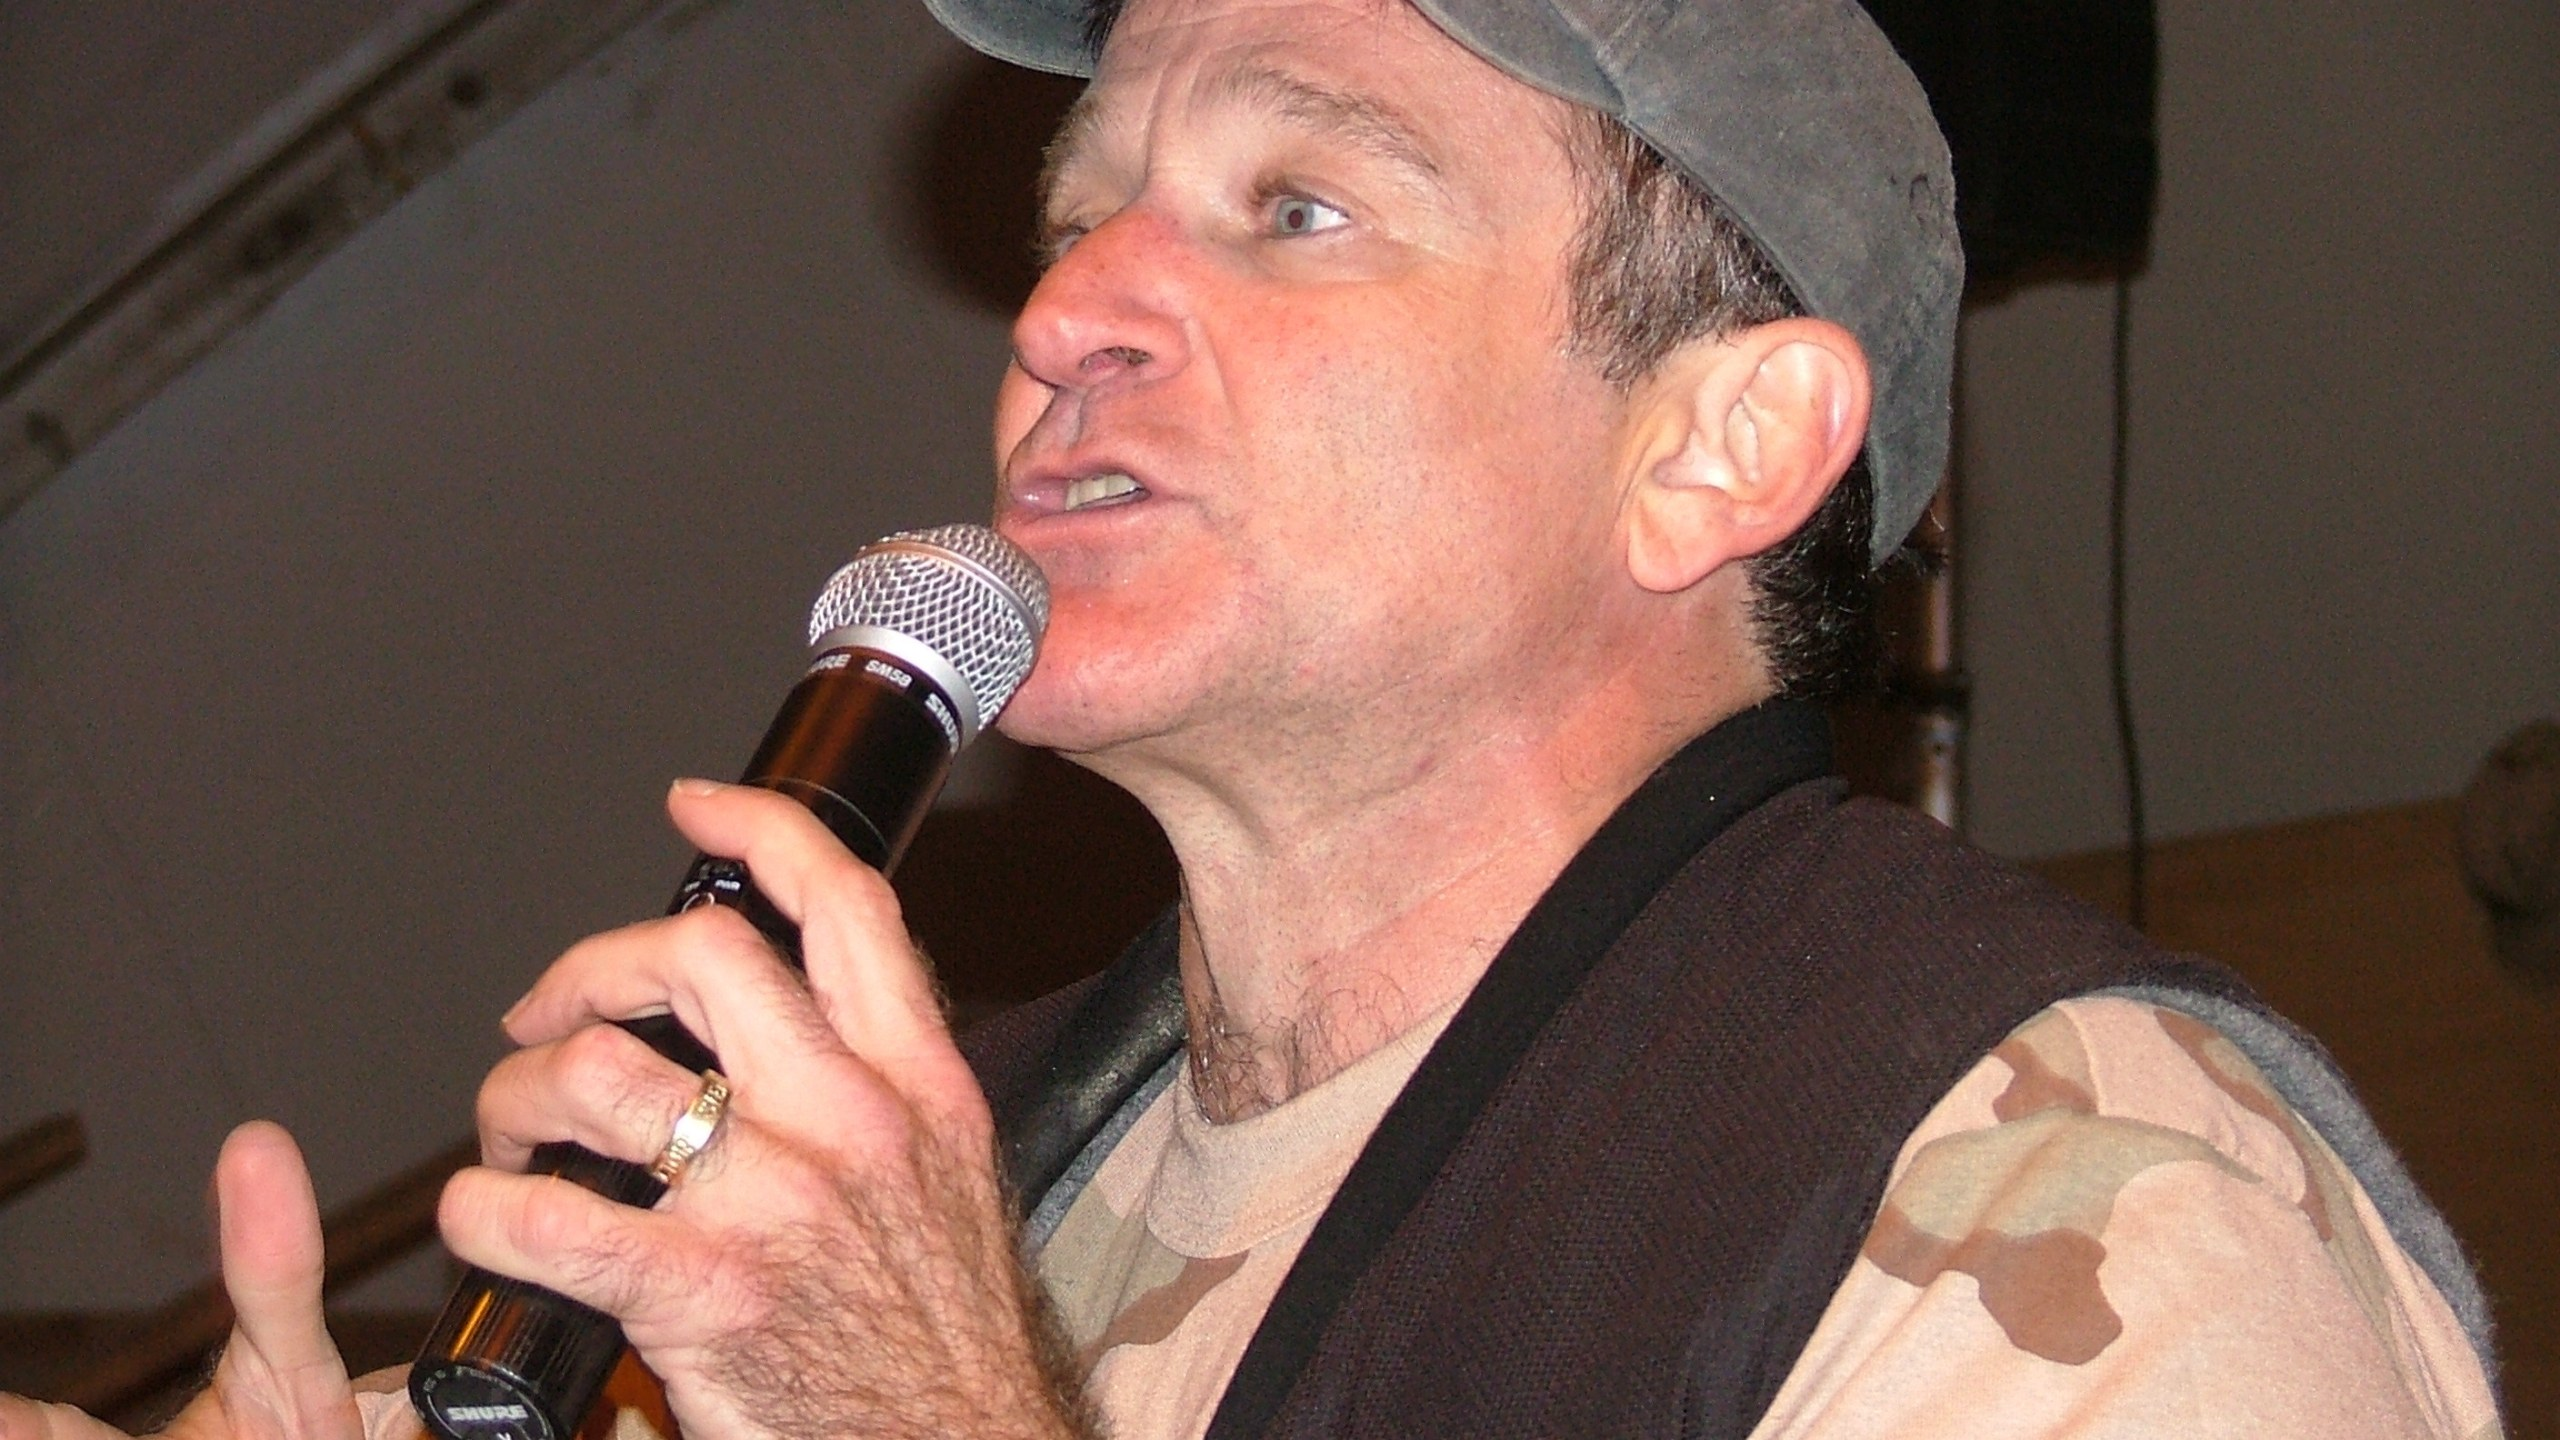 Actor and comedian Robin Williams performs a USO show at Bagram Airfield, Afghanistan in December, 2003. Photo: CNN